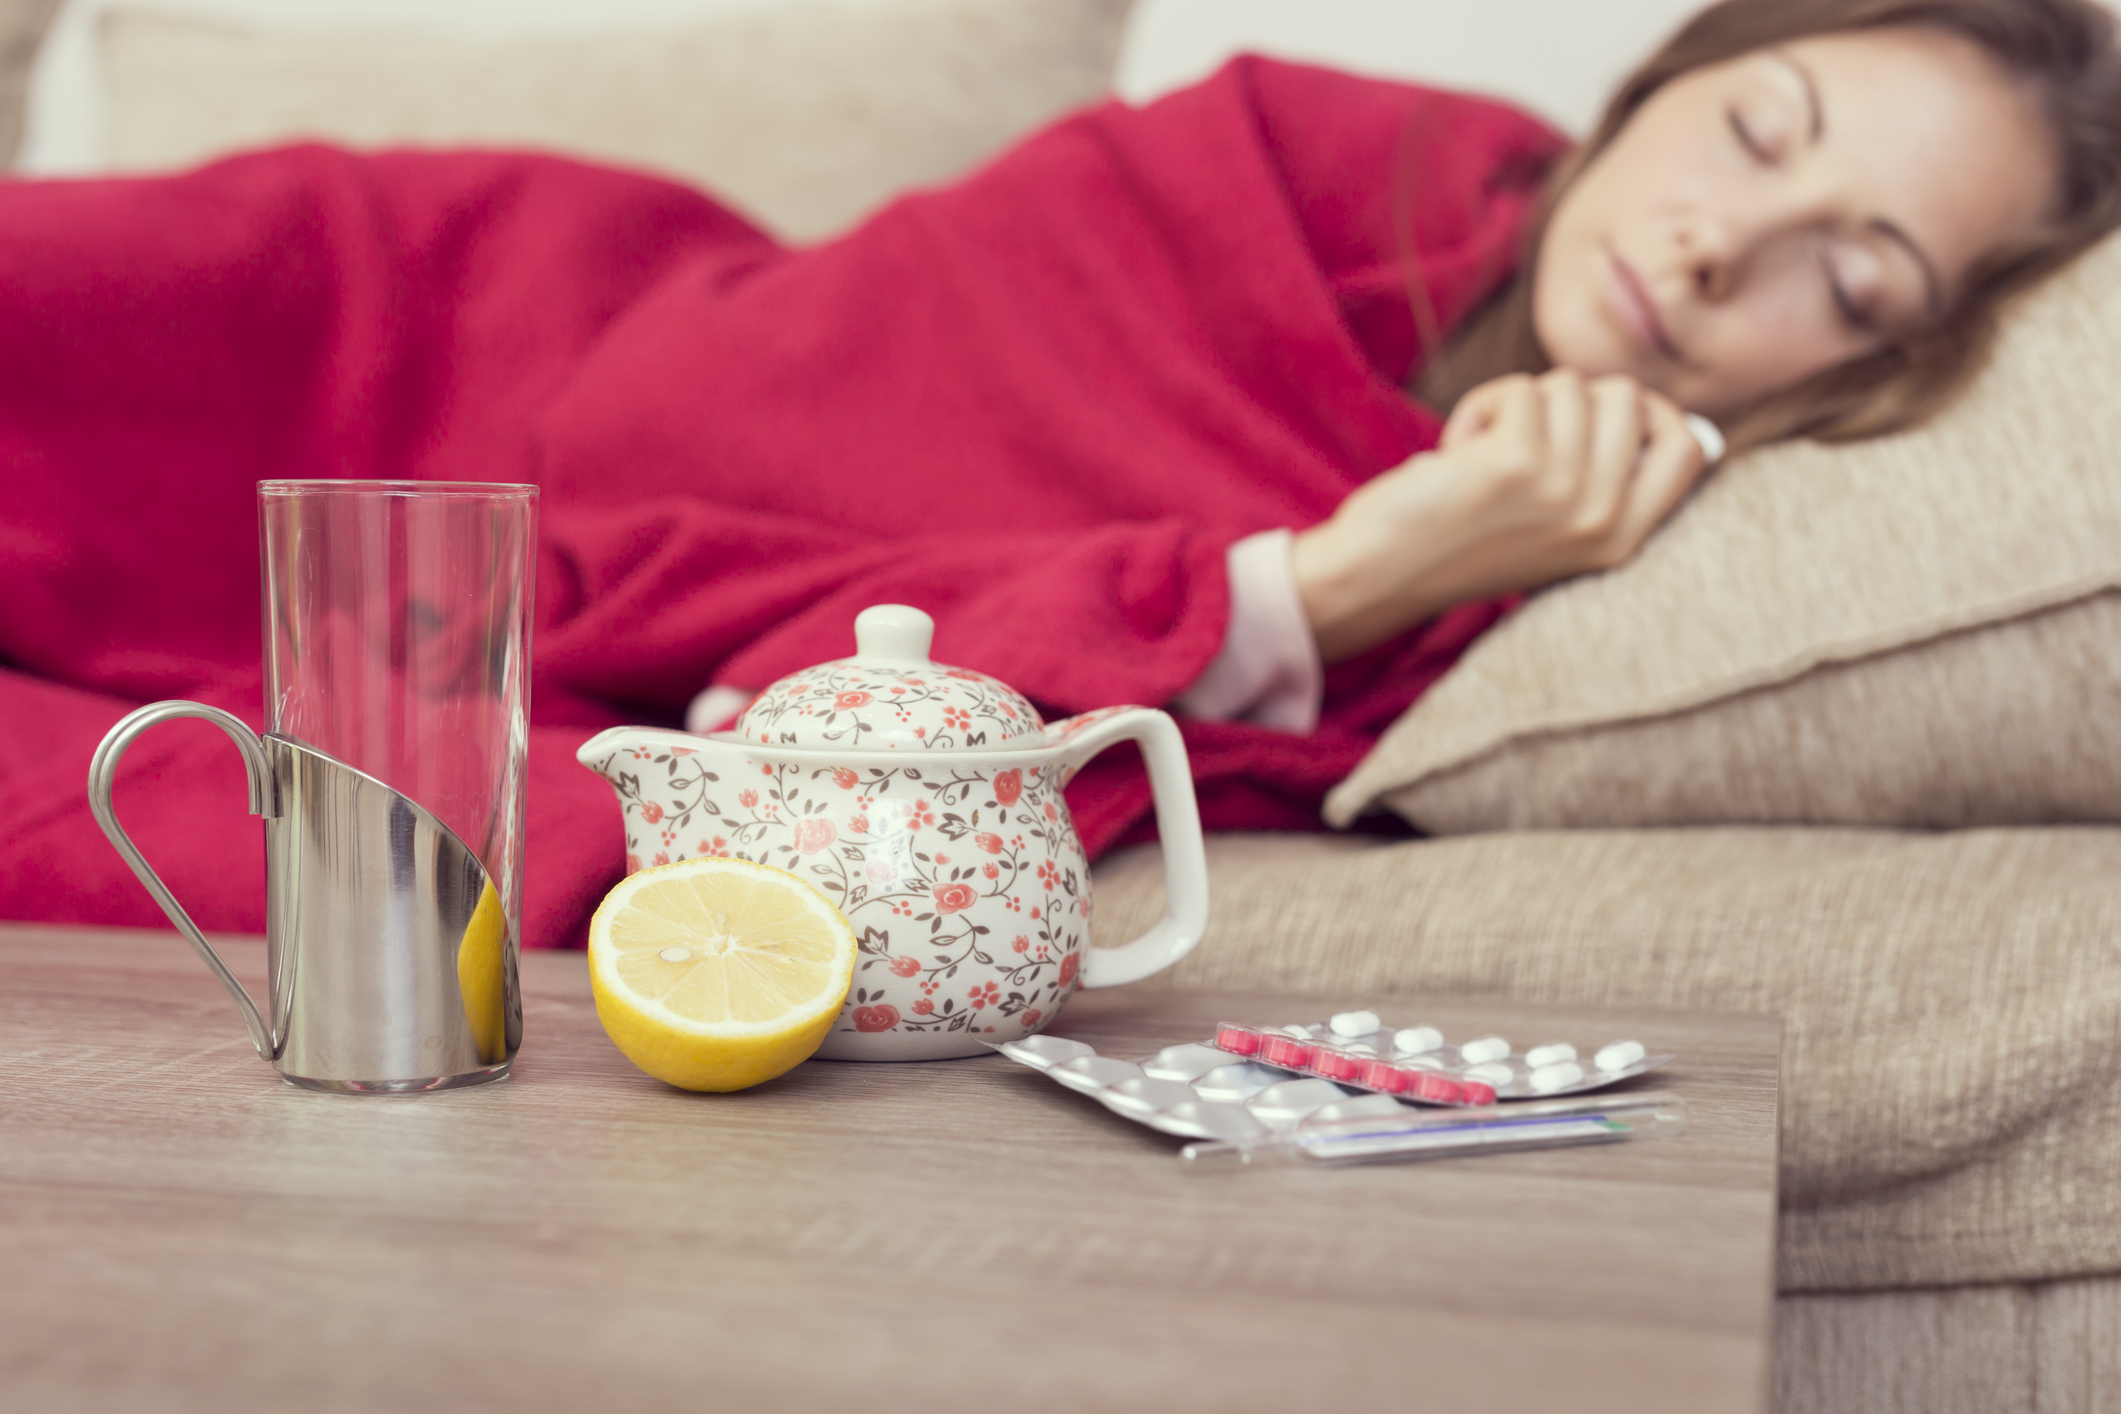 Recognizing Early Flu Symptoms